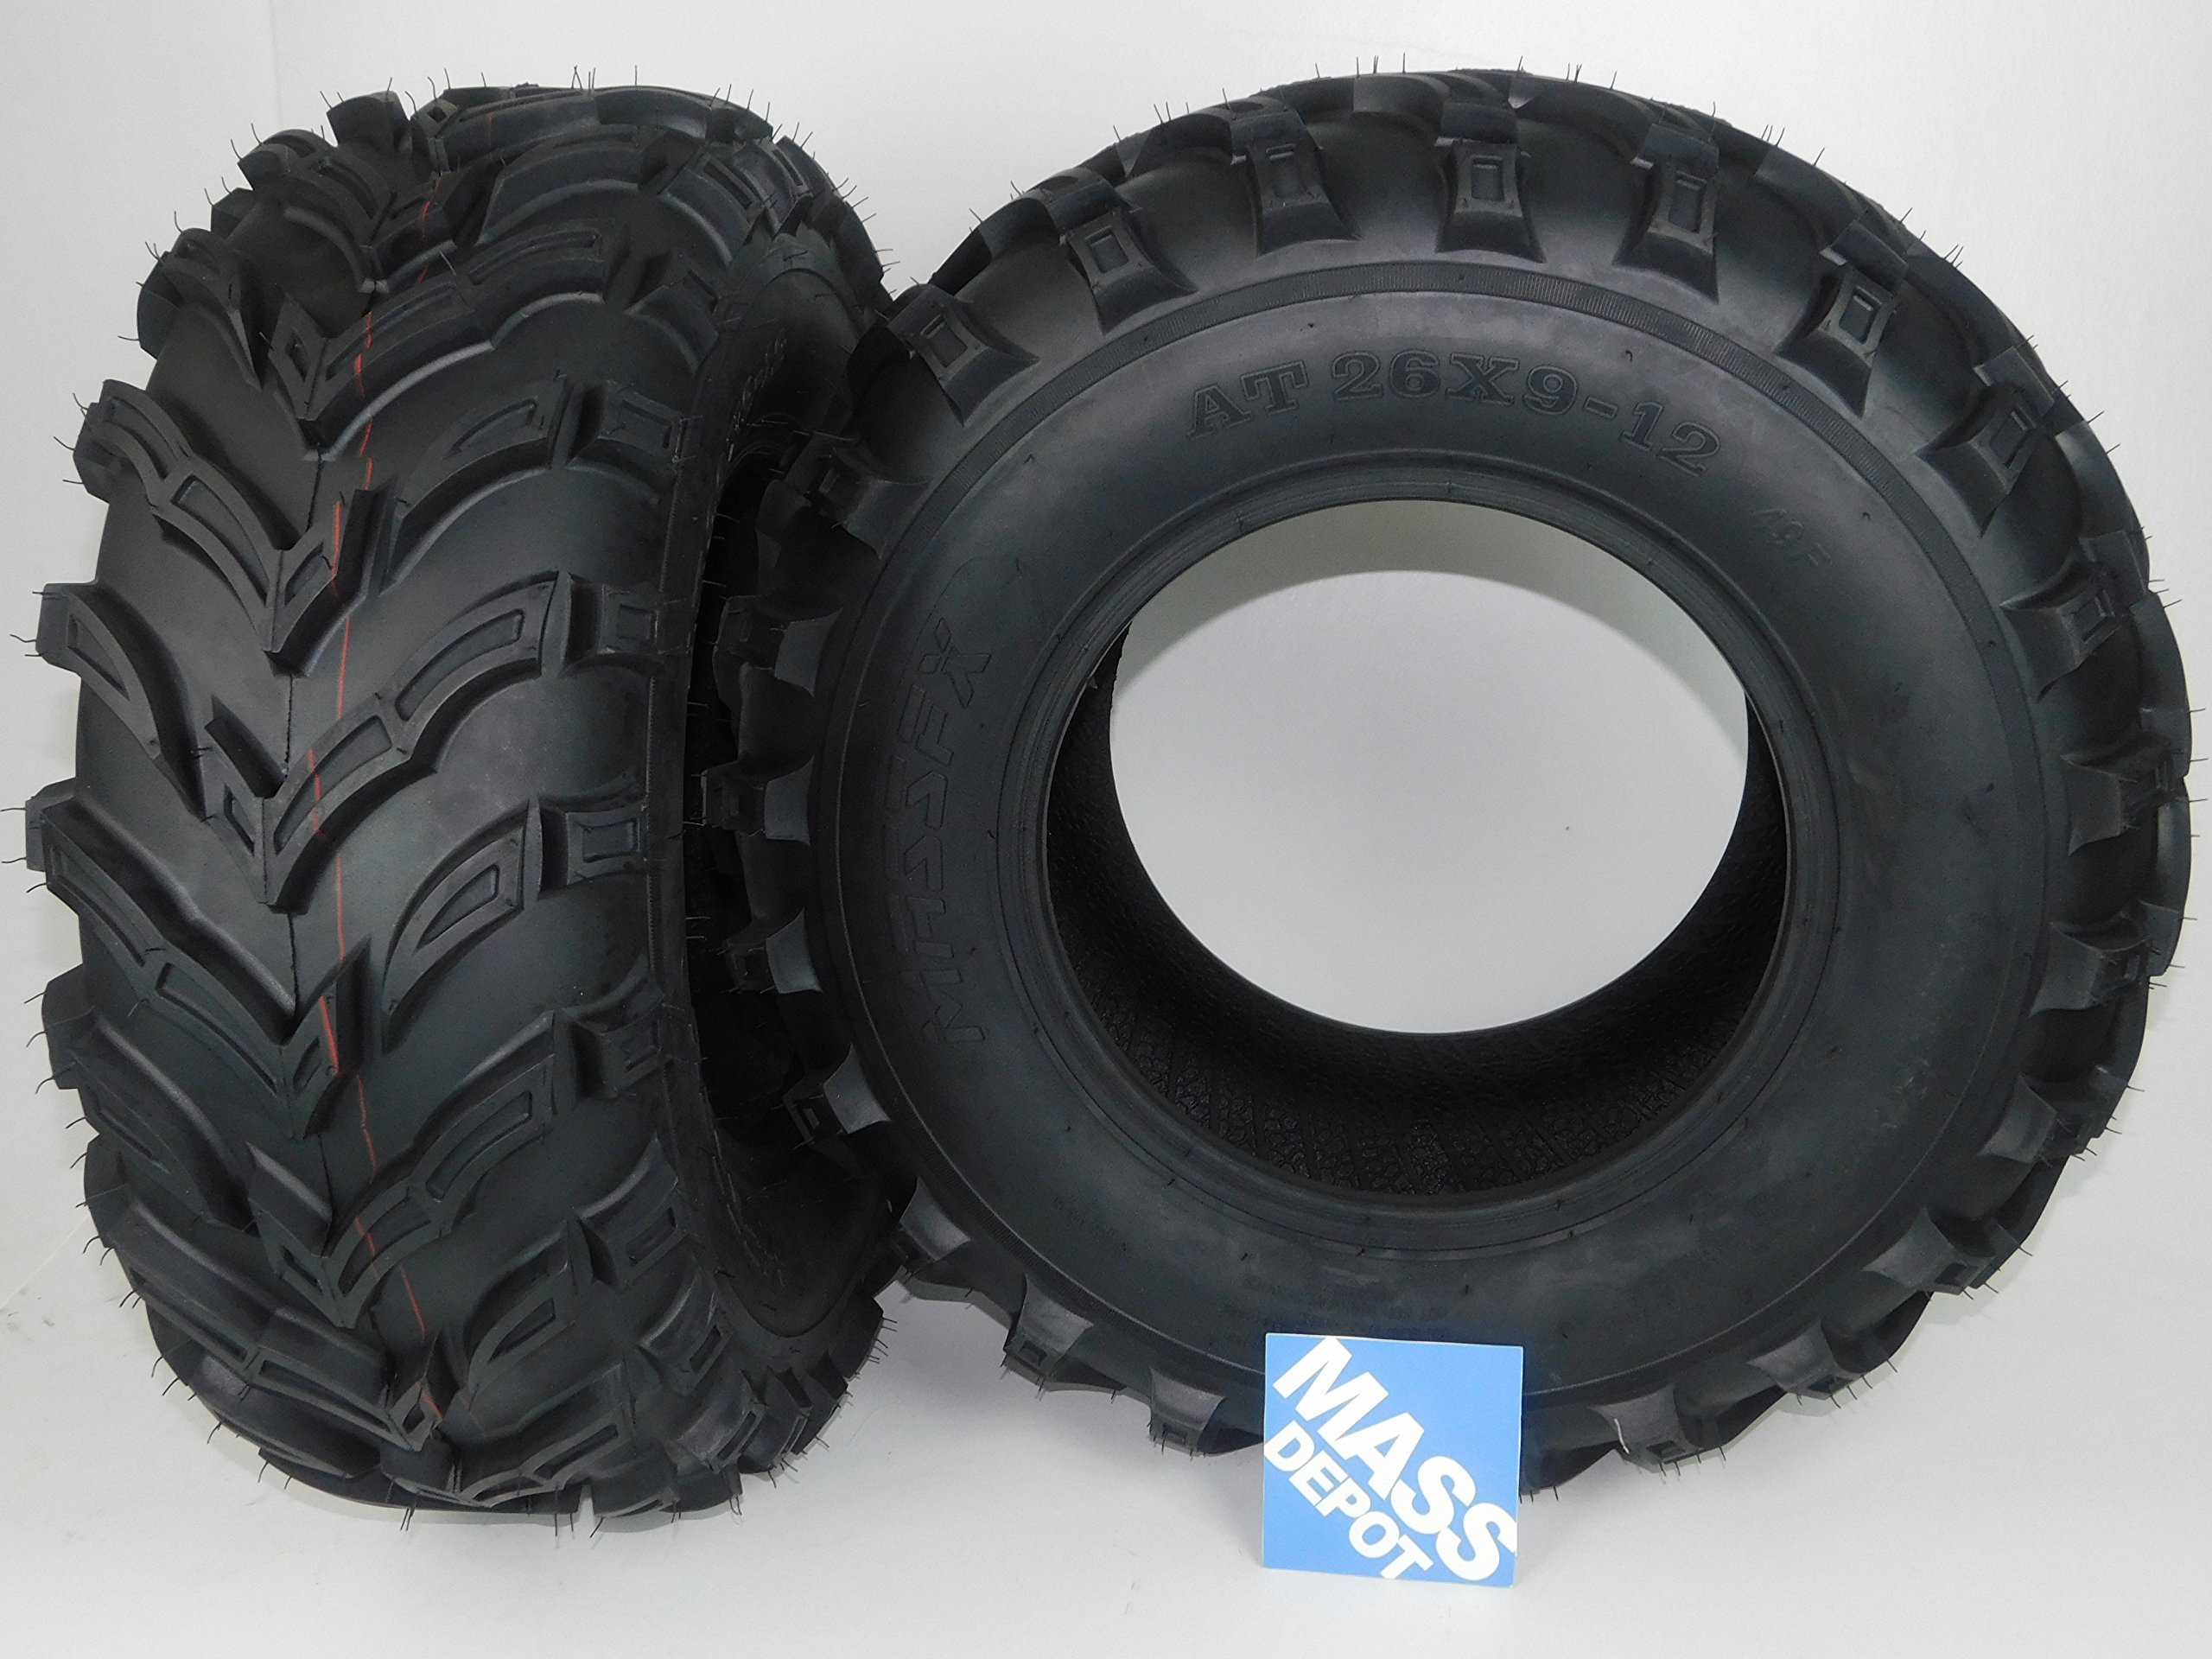 New MASSFX MS ATV/UTV Tires 26 x9-12 Front, Set of 2 26x9x12 26x9/12